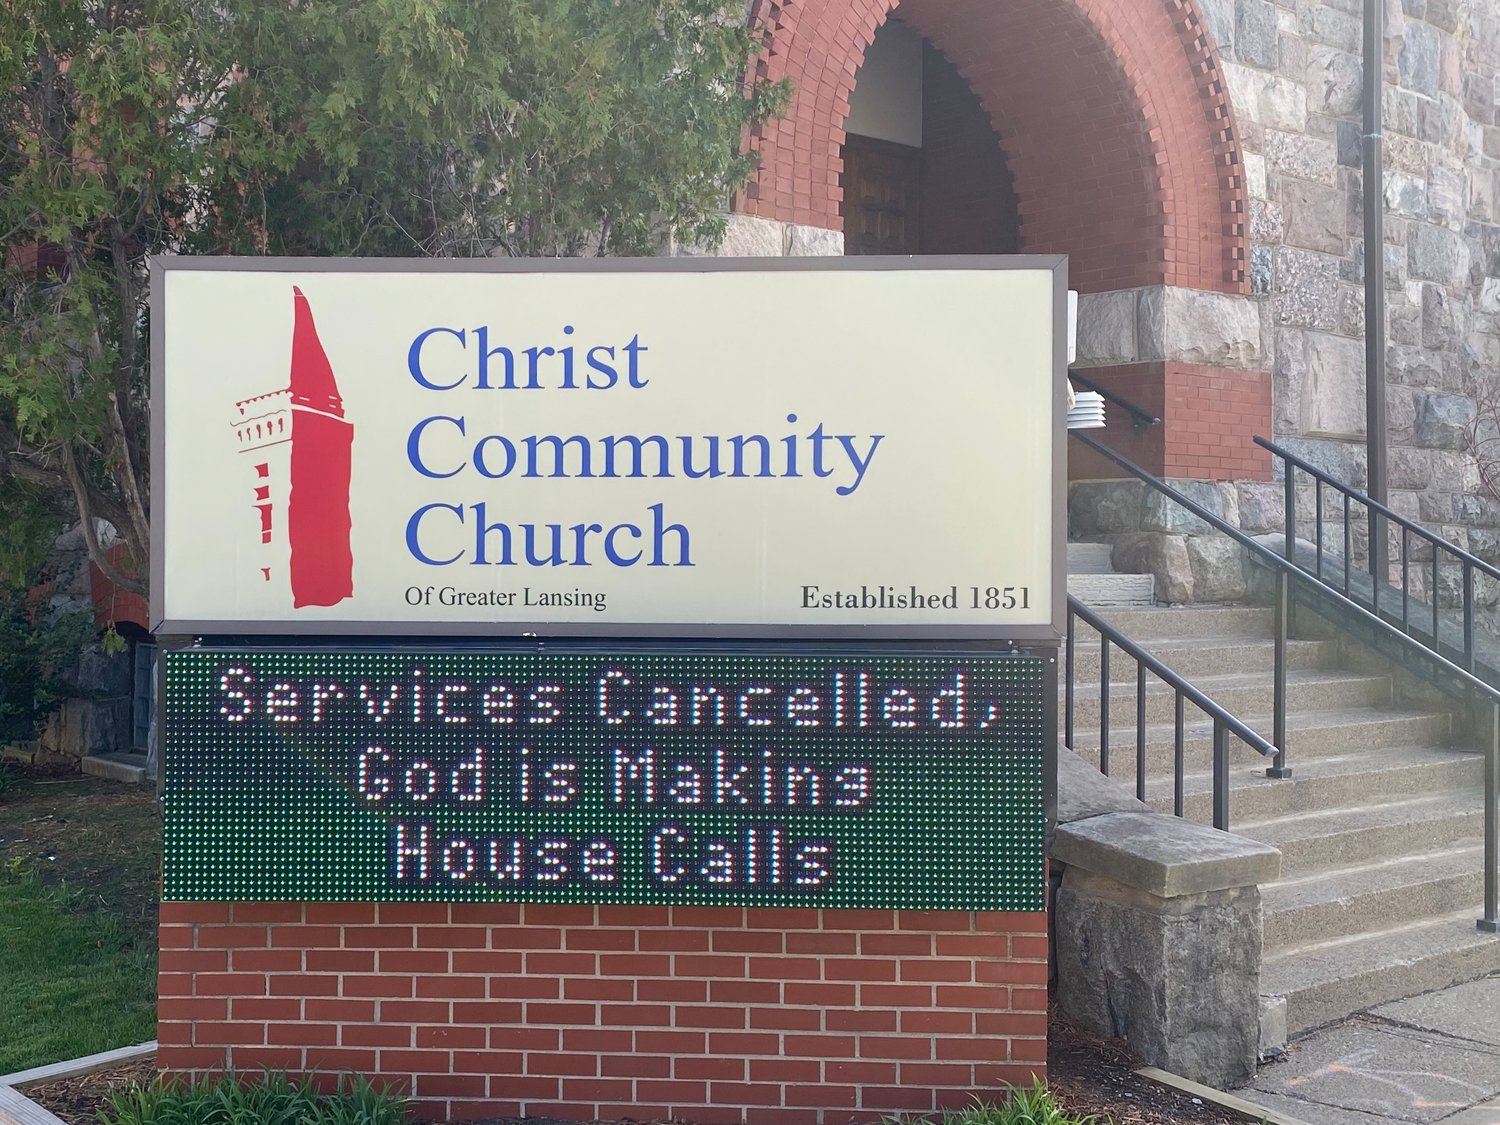 Signage today at Christ Community Church, 227 N. Capitol Ave., in Lansing.